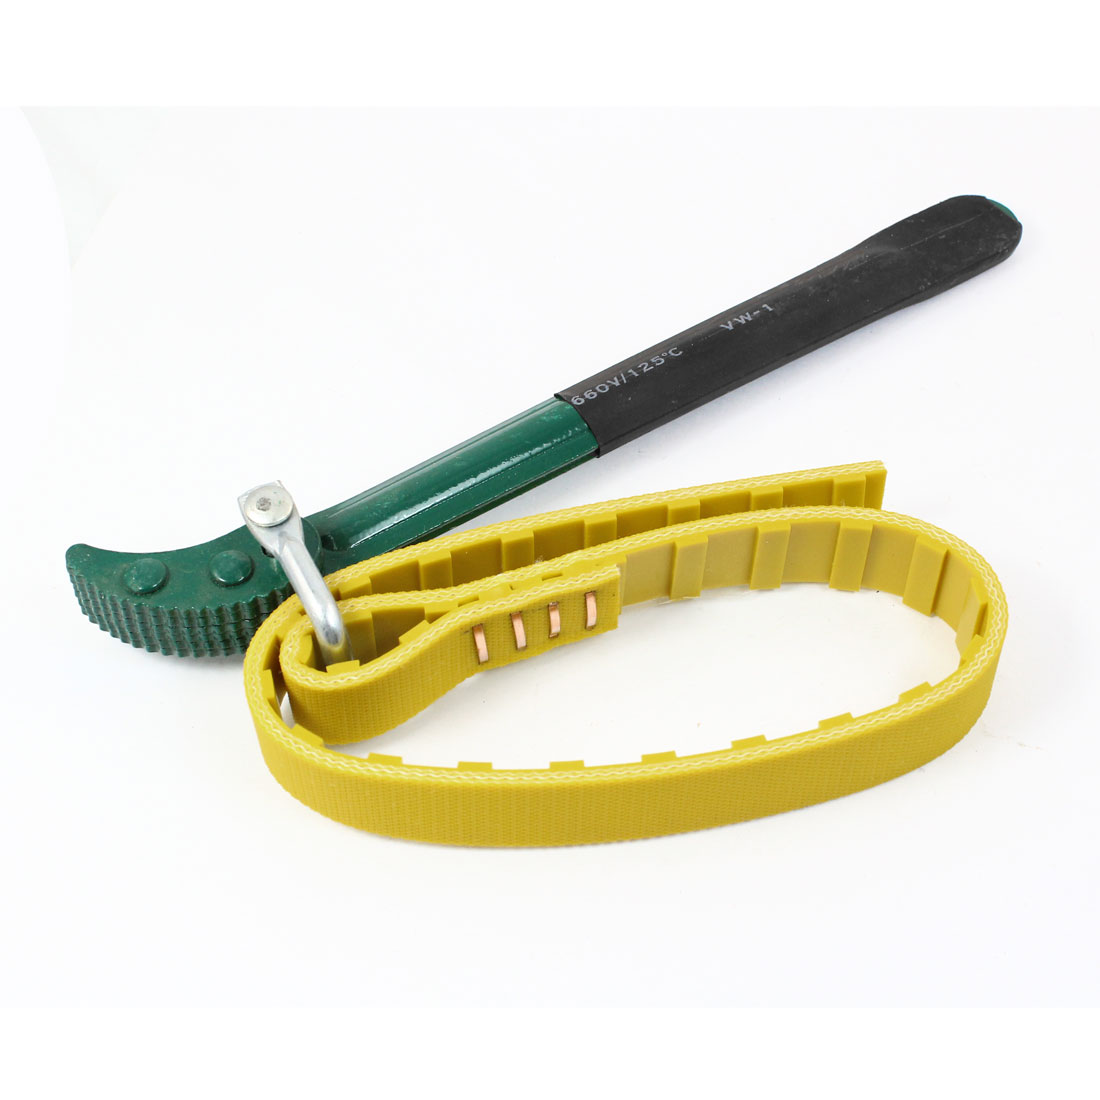 Auto Oil Filter Strap Belt Type Wrench Spanner Hand Tool Yellow Green for Nissan